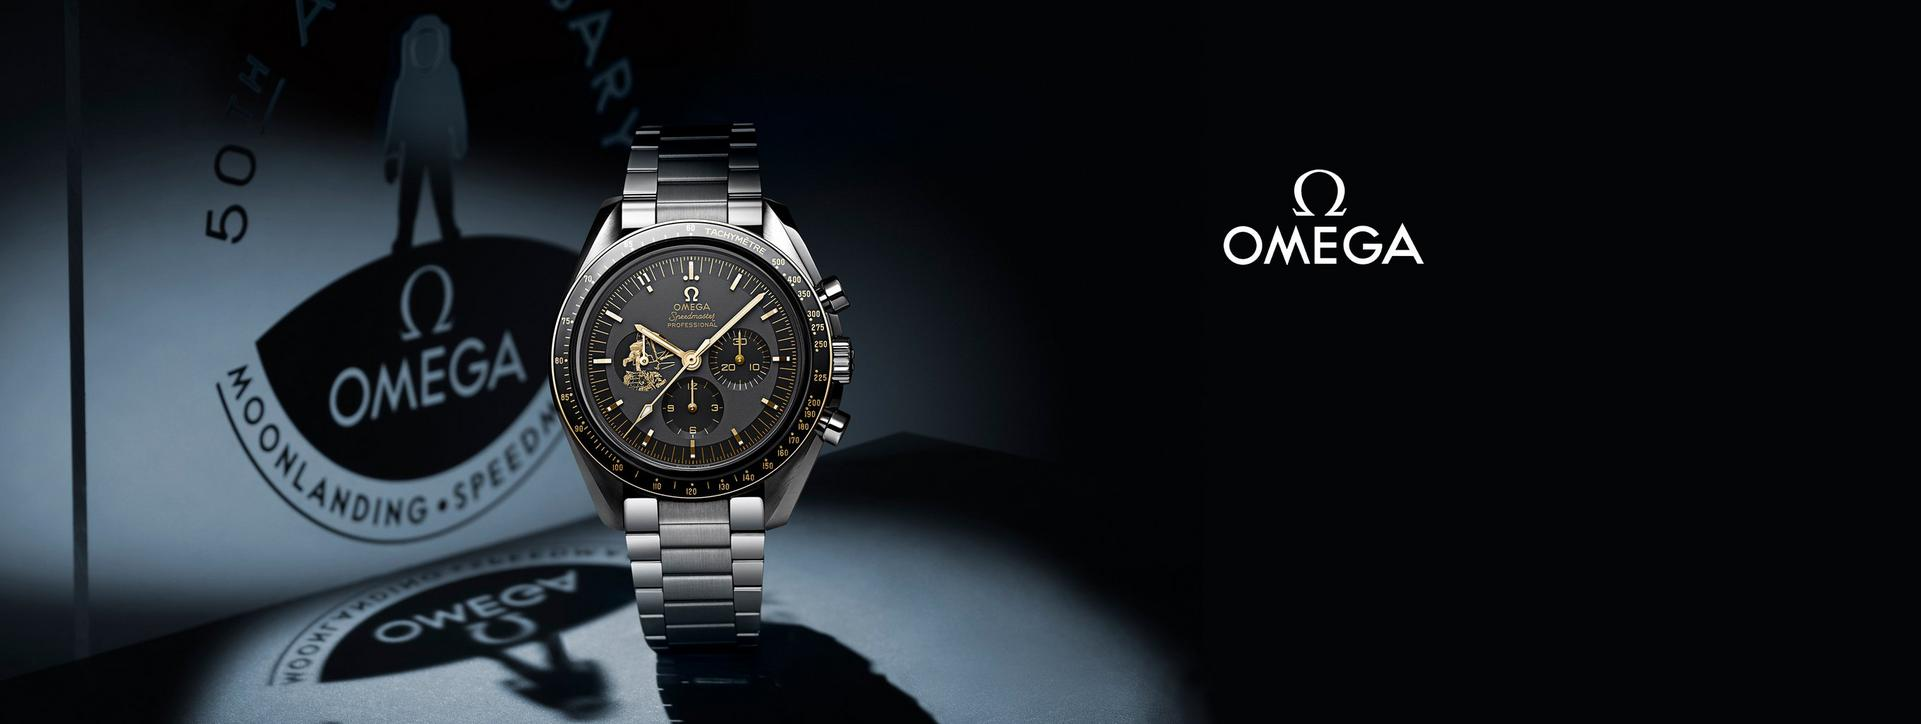 Omega moonwatch at Ernest Jones